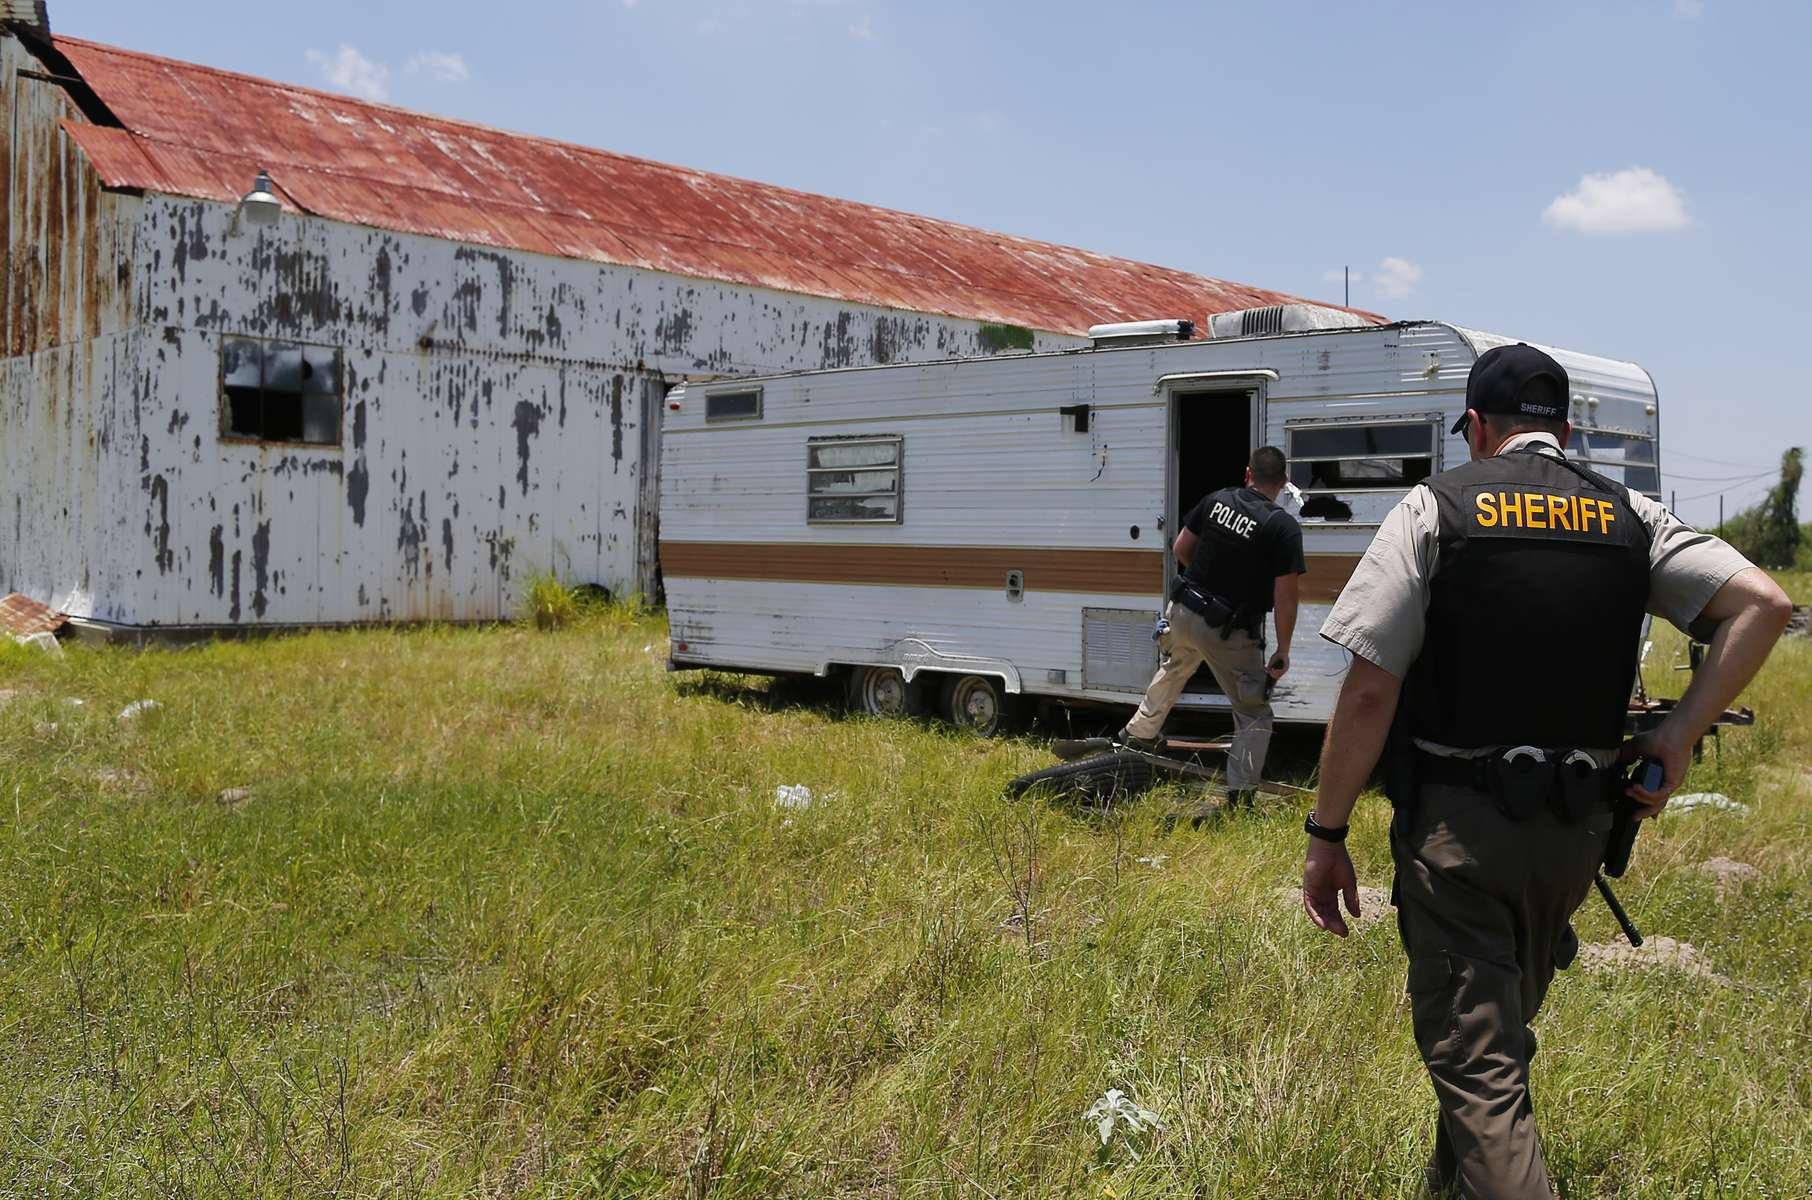 Falfurrias, Texas -  Cameron Coleman of the Hidalgo County Sheriff's Department (L) and Daniel Walden Chief of Dona ISD Police Department walk towards a trailer where migrants are known to wait and watch the street as they make their trek through a ranch in Falfurrias, Texas June 11, 2014. Both officers are part of Brooks County Sheriff's Office Rescue Posse an effort by local police to help lend an additional hand to Falfurrias who is understaffed and underfunded.